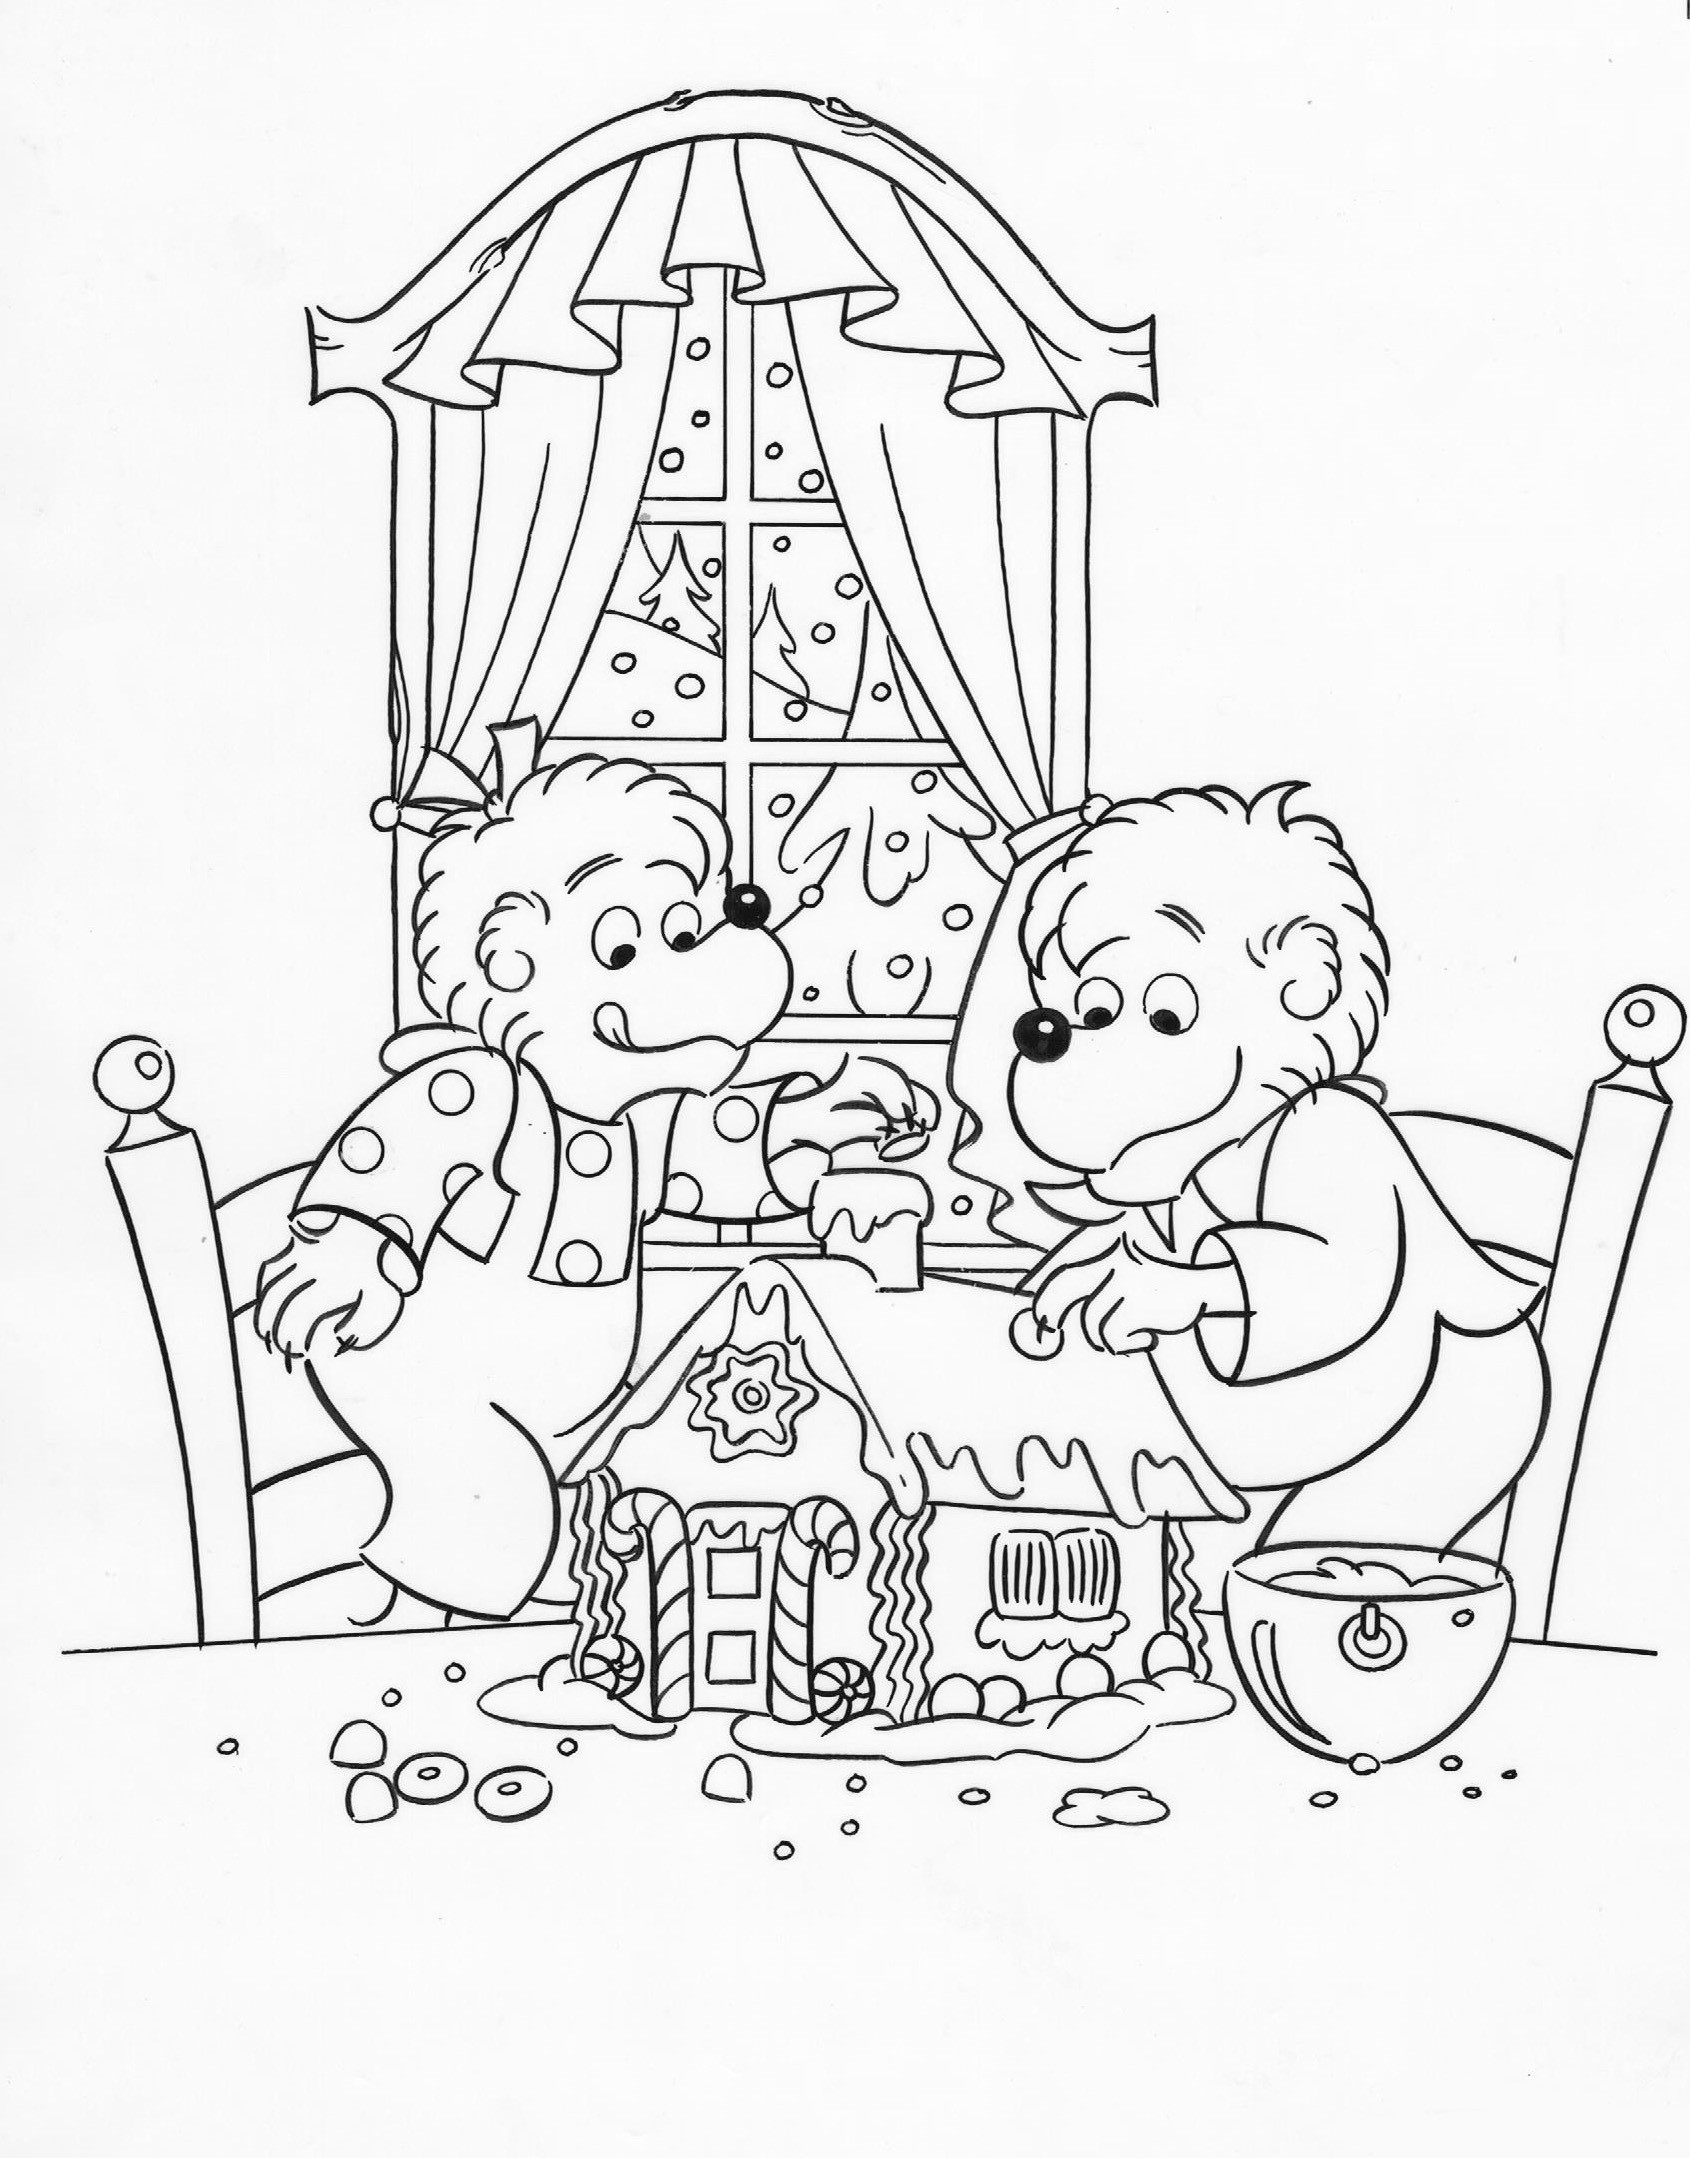 berenstain bears coloring pages berenstain bears halloween coloring pages coloring home pages bears coloring berenstain